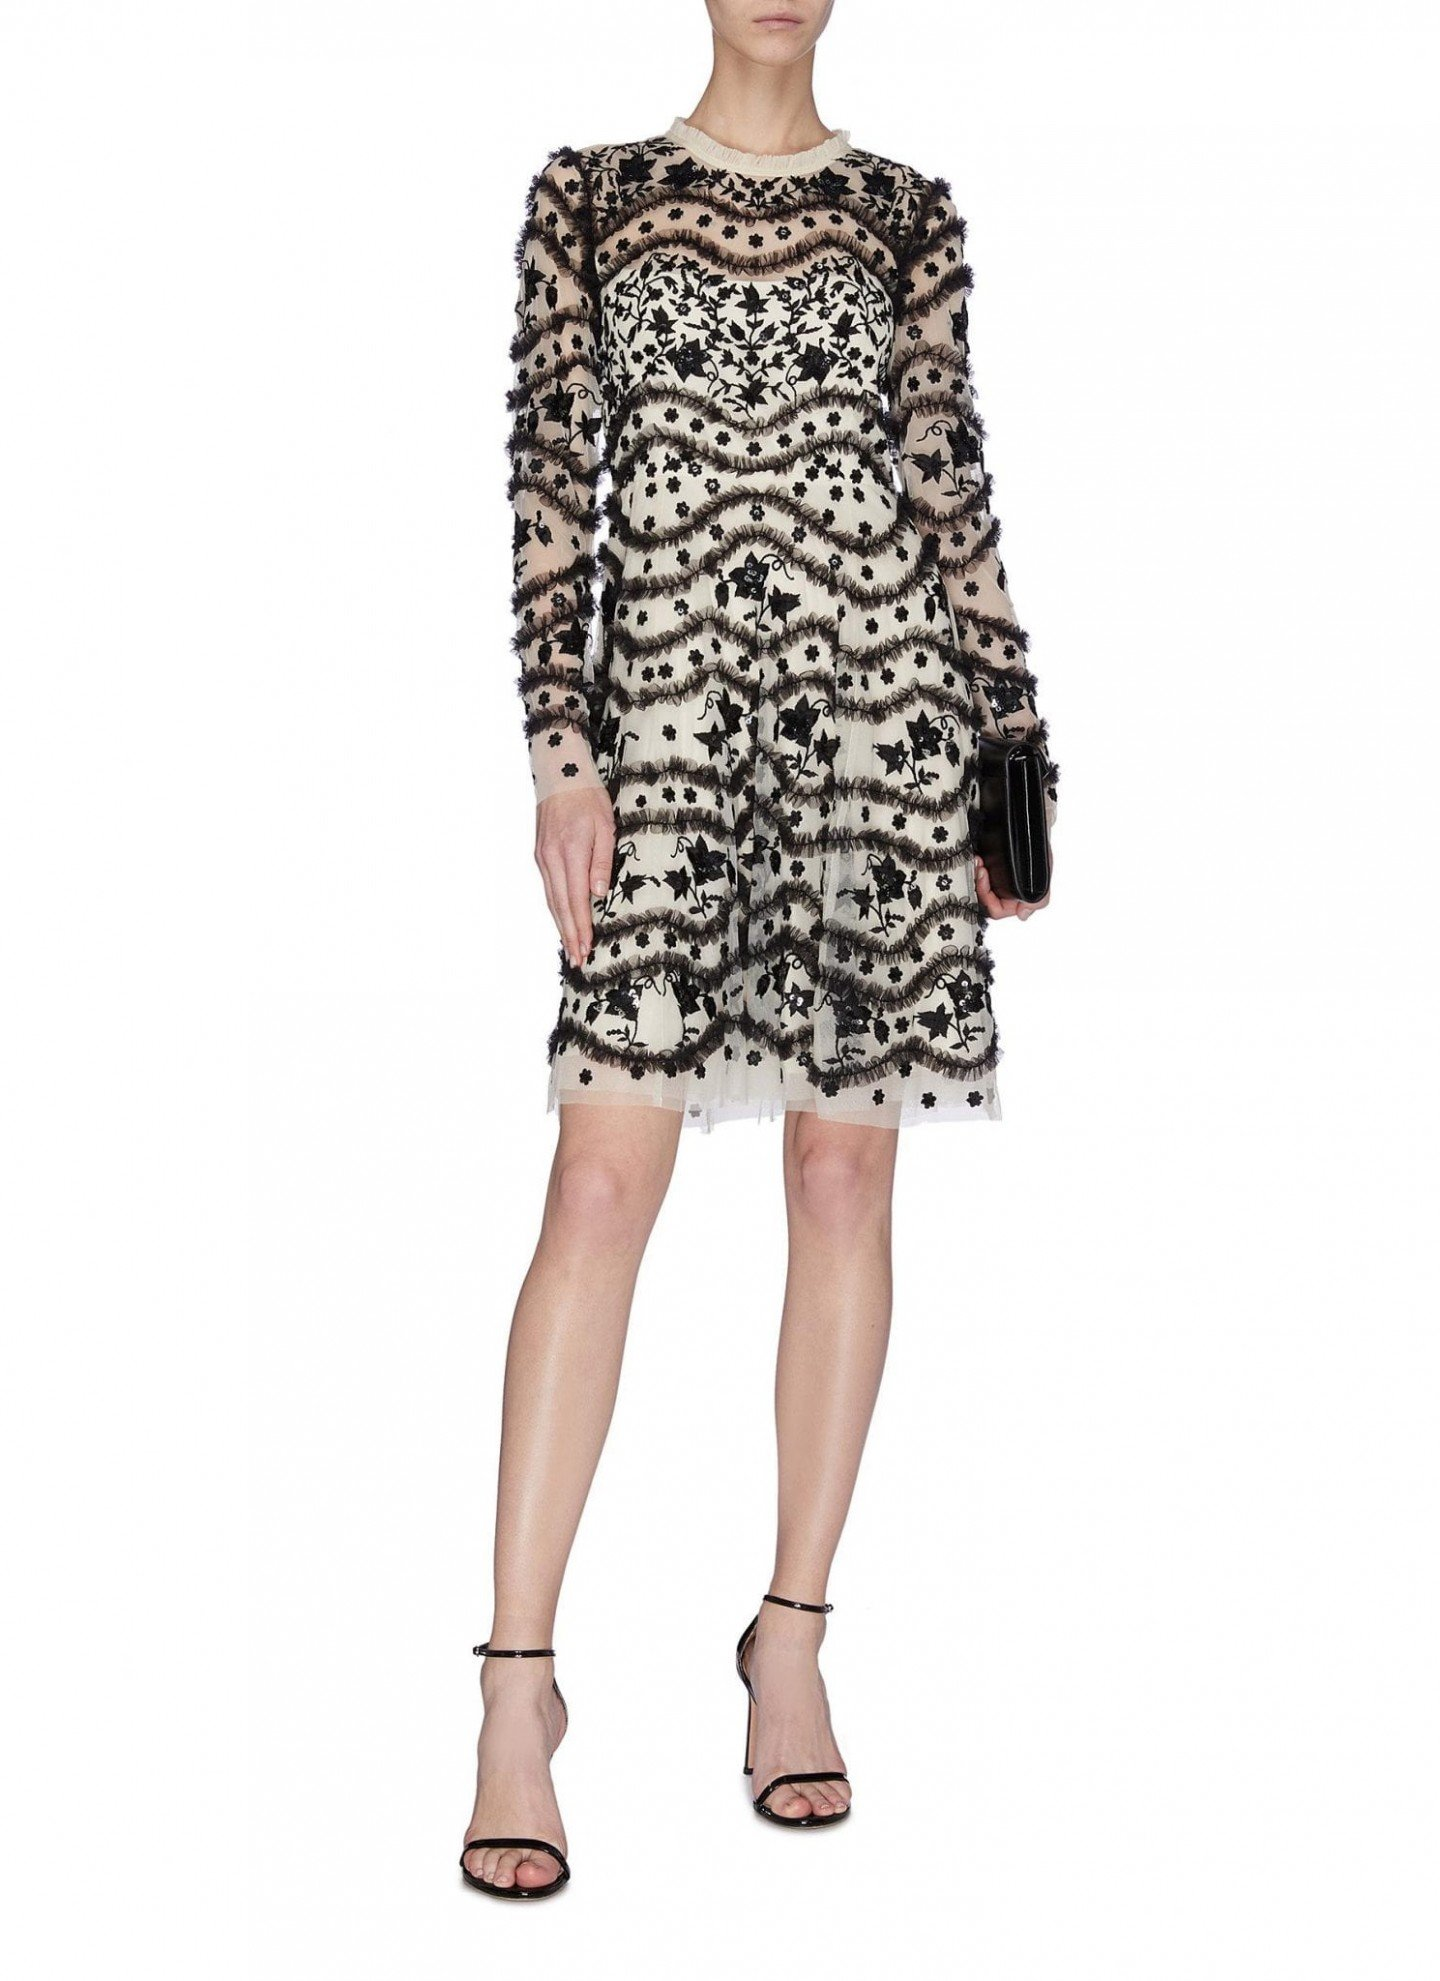 NEEDLE & THREAD 'Bloom' Sequin Embroidered Ruffle Dress